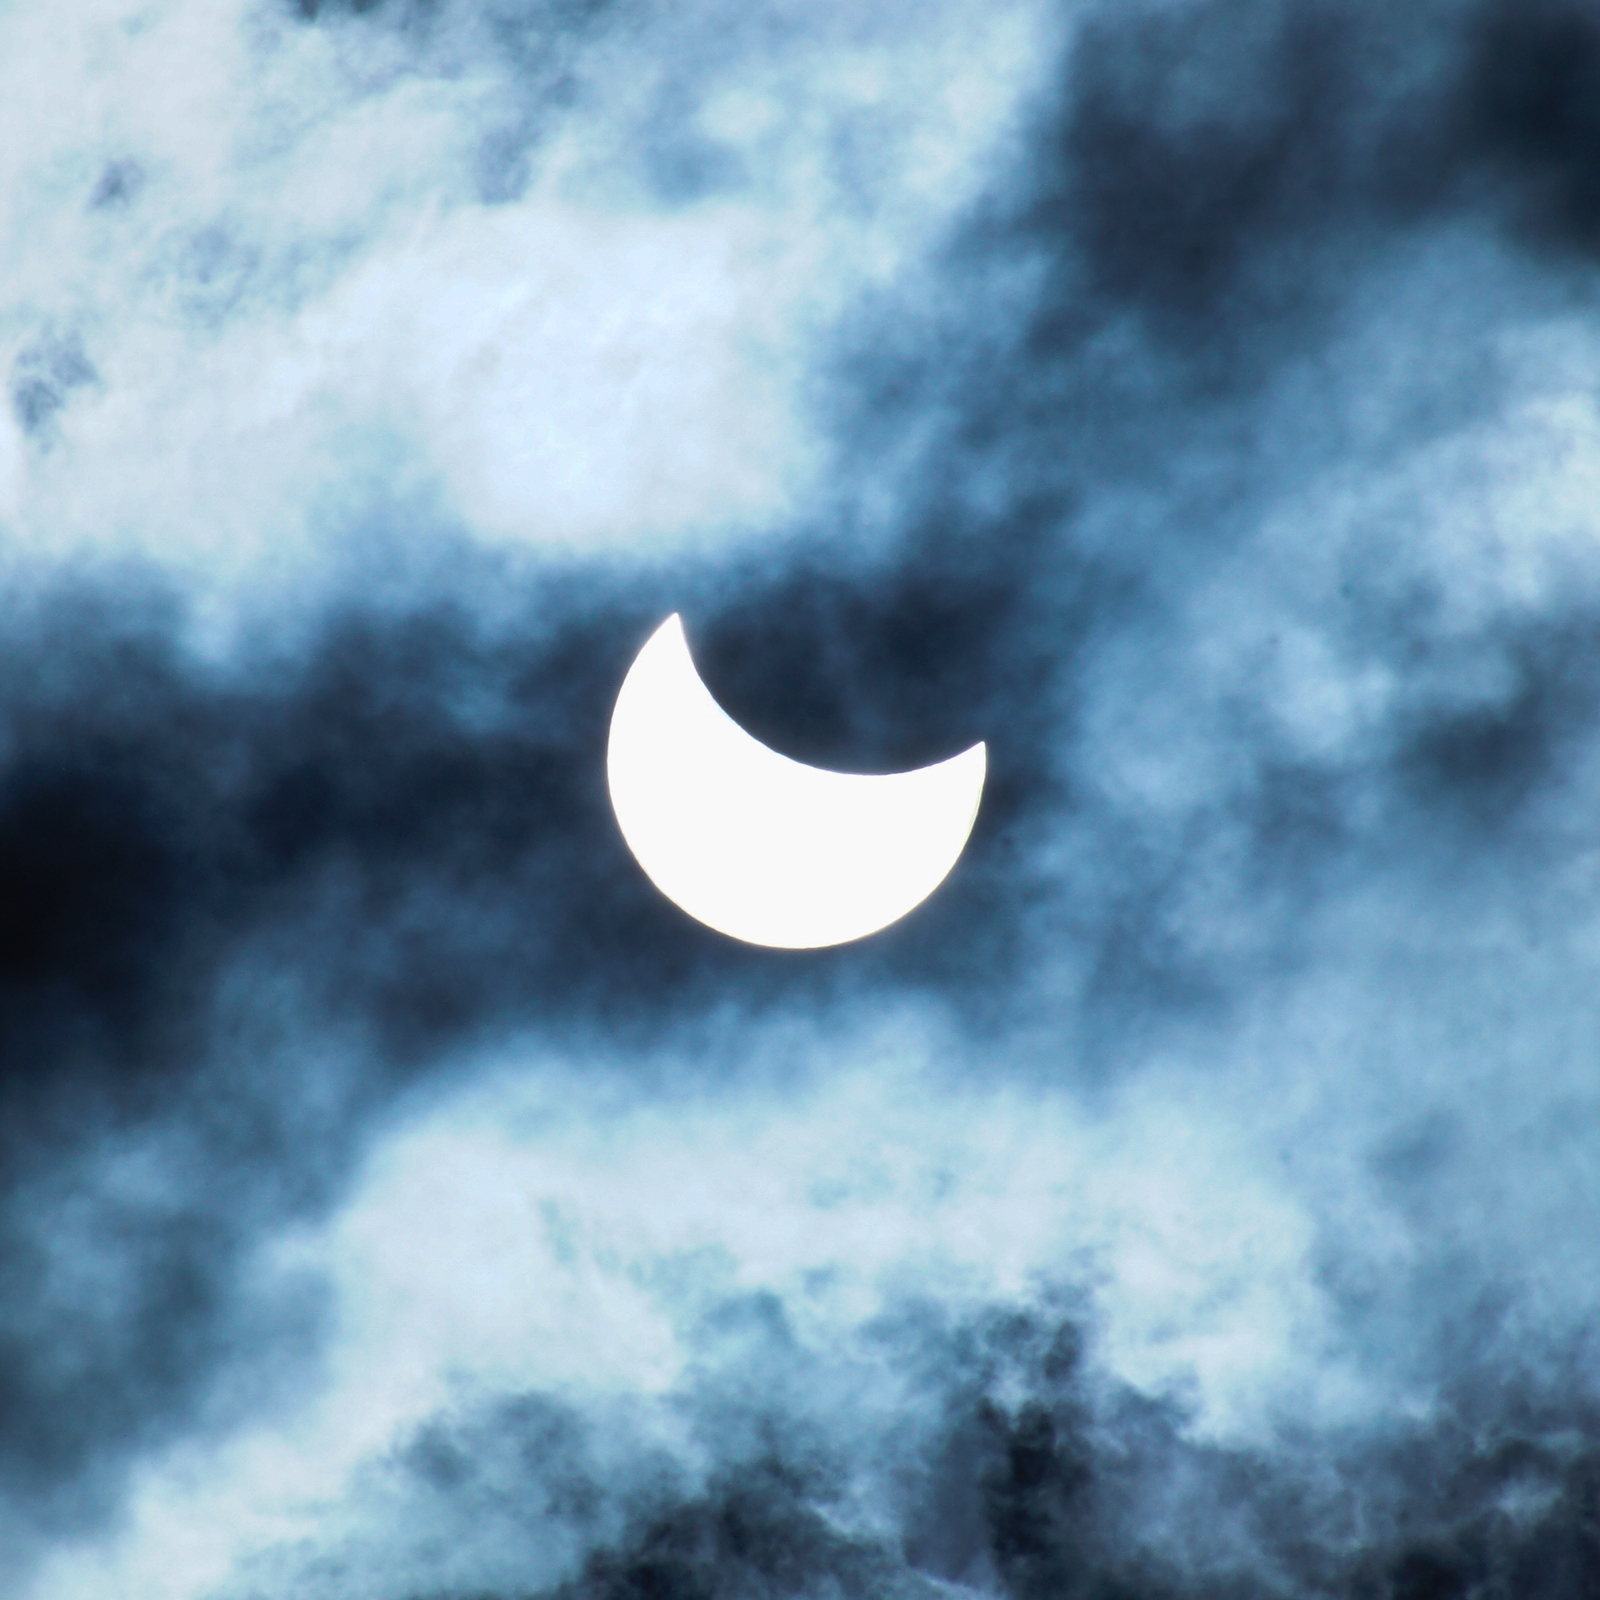 Partial solar eclipse March 20th 2015